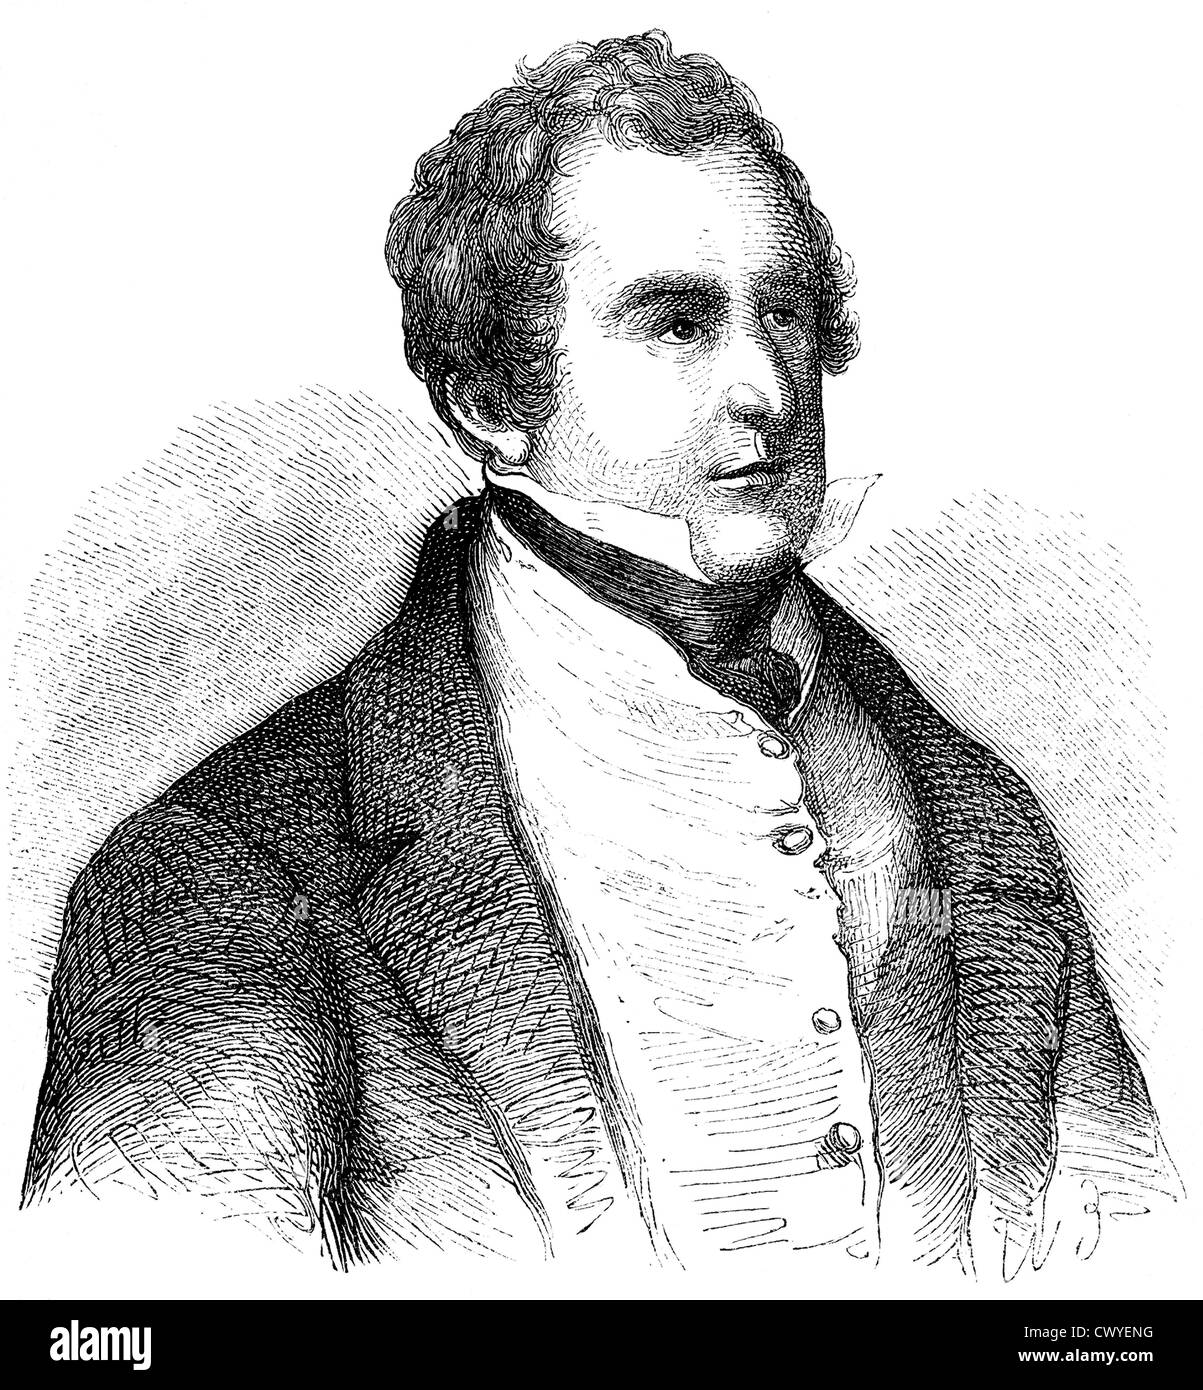 Sir Robert Peel, 1788 - 1850, 2nd Baronet Peel of Clanfield, British politician, prime minister and founder of the - Stock Image